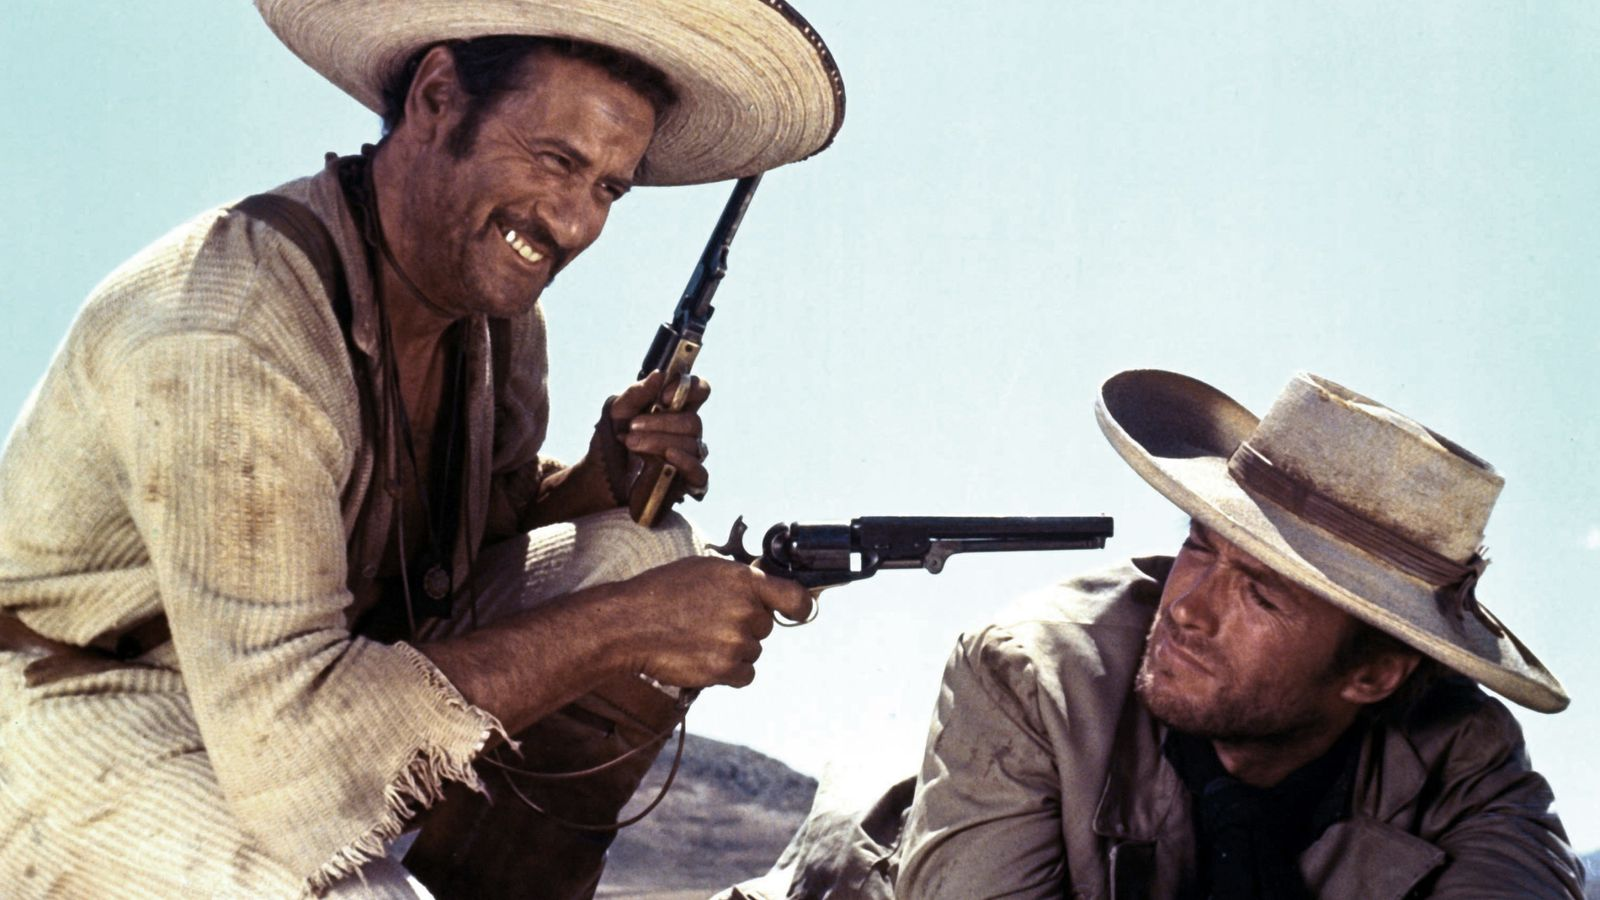 Ennio Morricone: Composer of The Good, The Bad And The Ugly dies aged 91 | Ents & Arts News